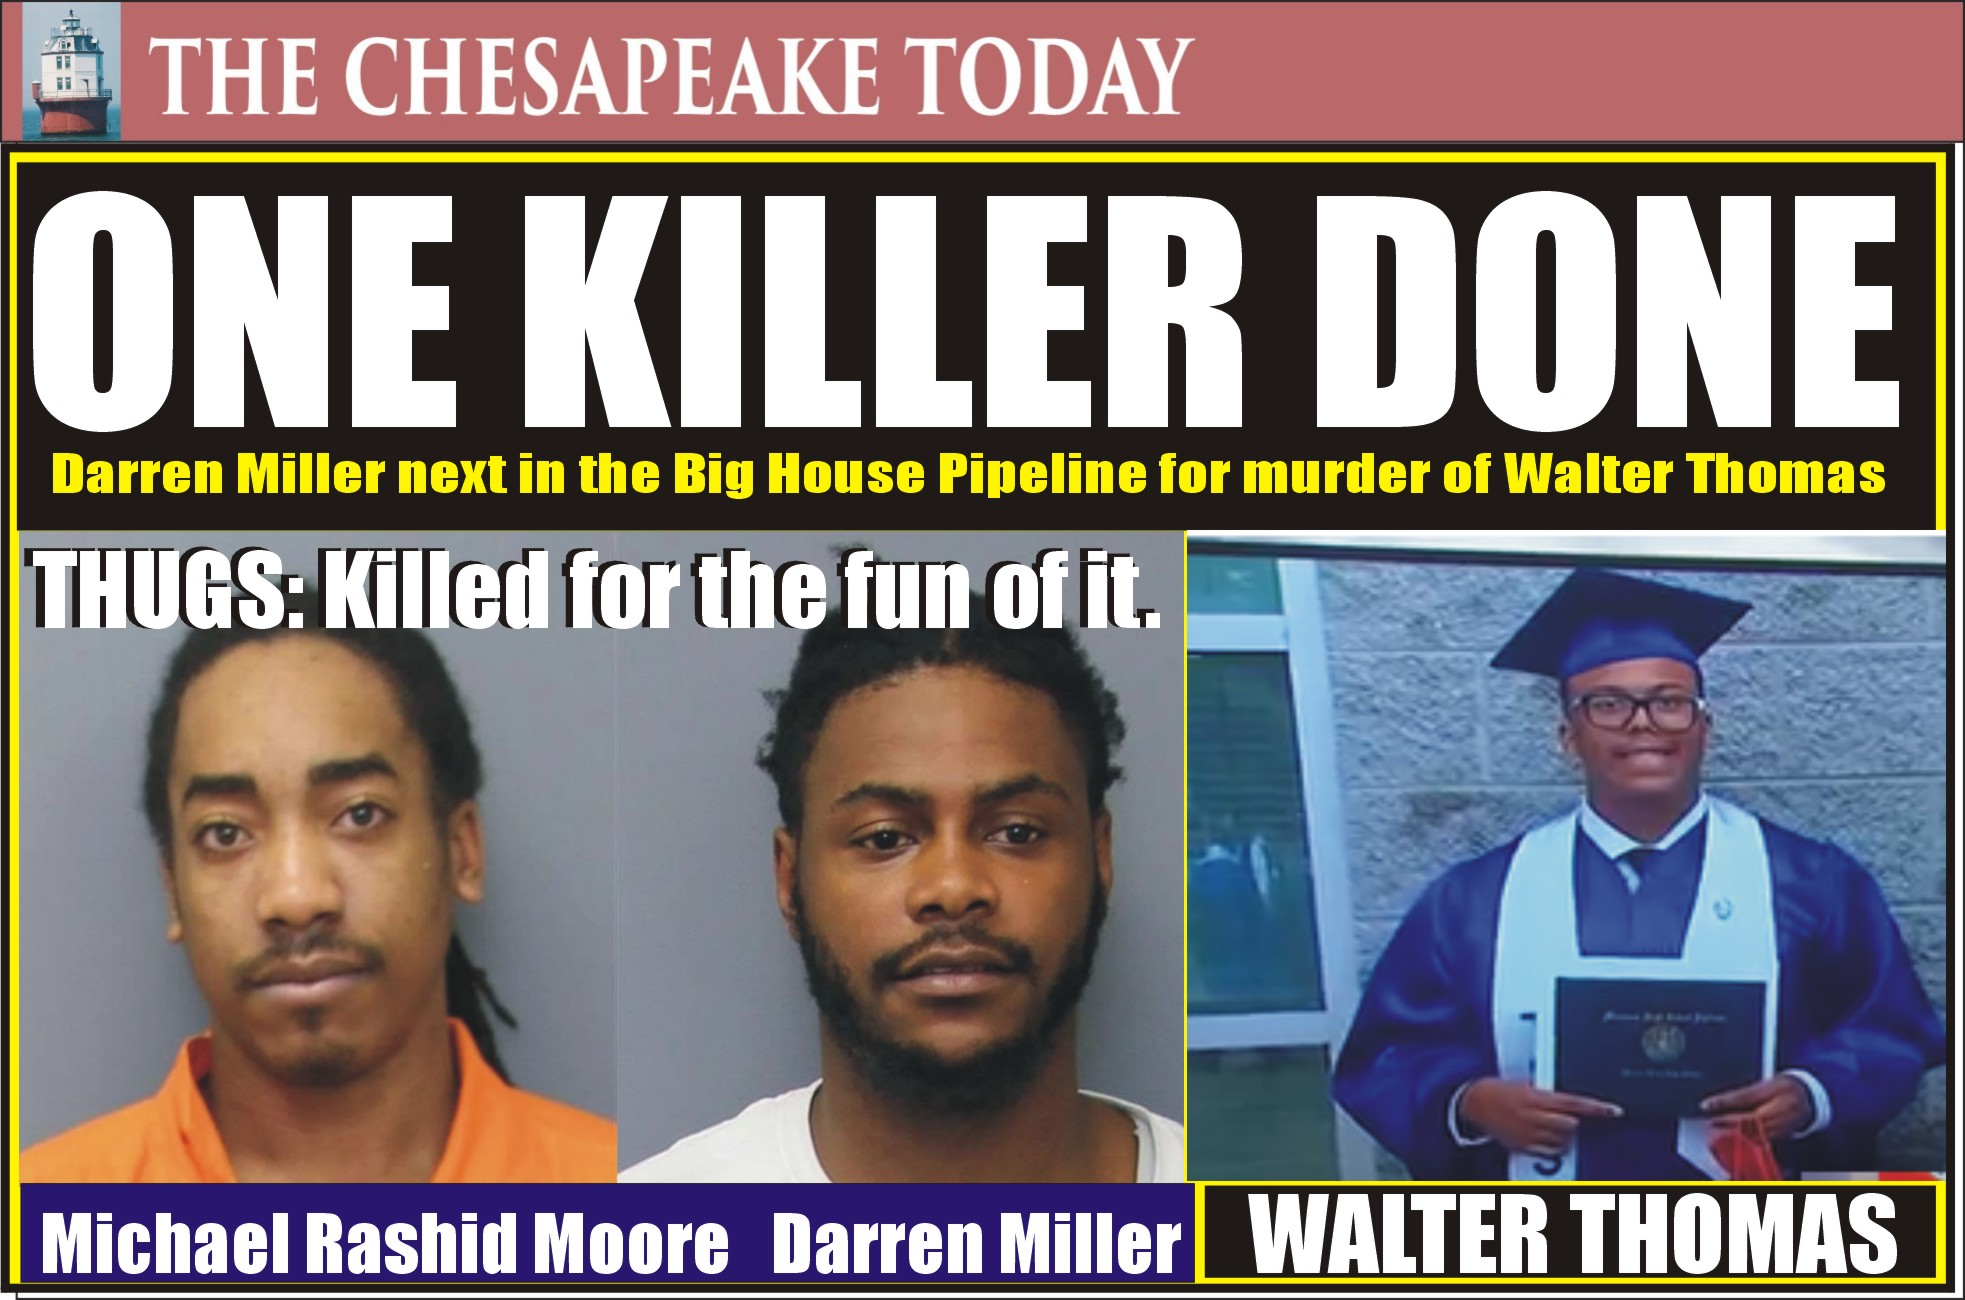 MURDER USA: Michael Rashid Moore avoids life sentence by making plea deal on the murder of Walter Thomas in Waldorf; pleas to the attempted murder of Ronald Murphy Jr.